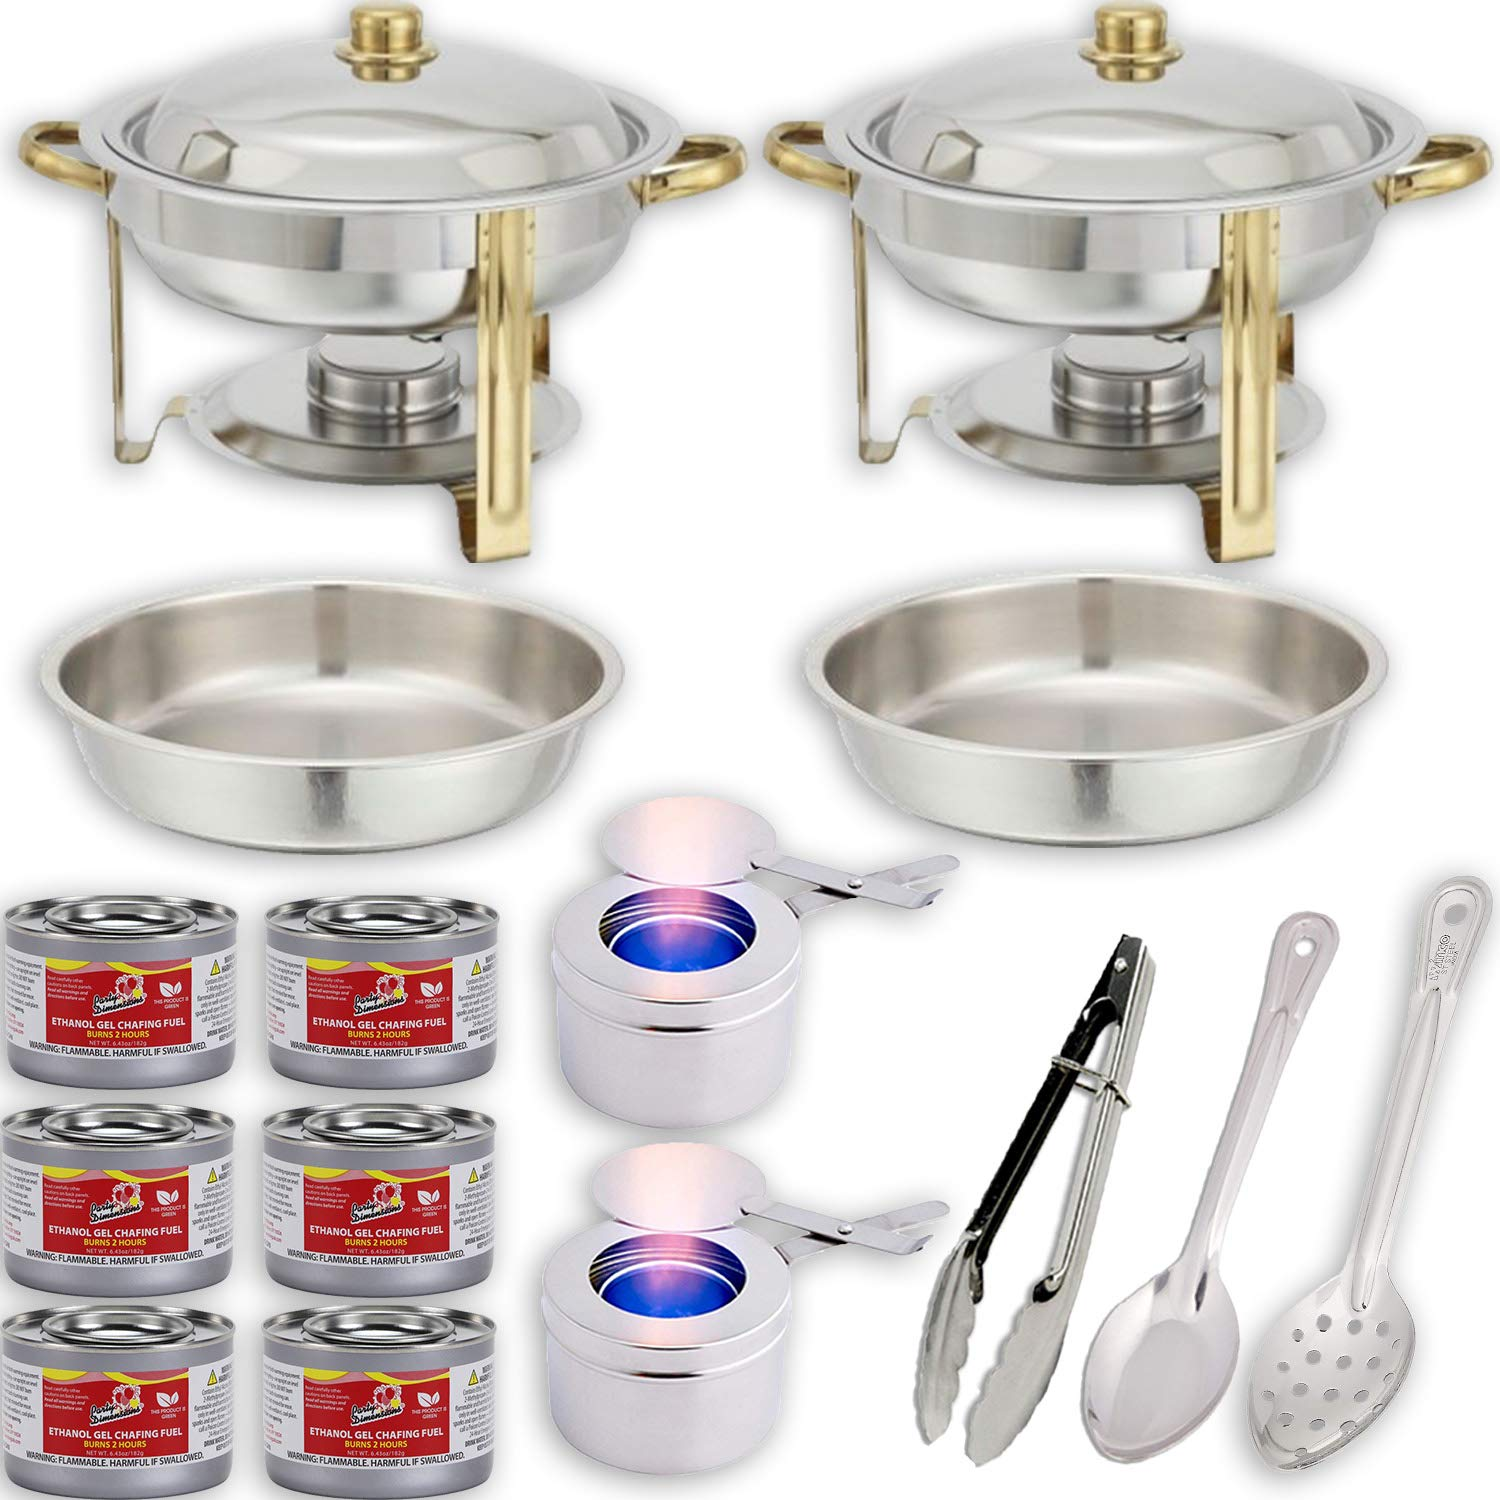 Round Chafing Dish Buffet Set w/Fuel - Water Pans + Food Pans (4 qt) + Frames + Lids + Fuel Holders + 6 Fuel Cans + Serving Utensils (11'' Perforated Spoon + 11'' Solid Spoon + 9'' Tong) - 2 Full Warmer